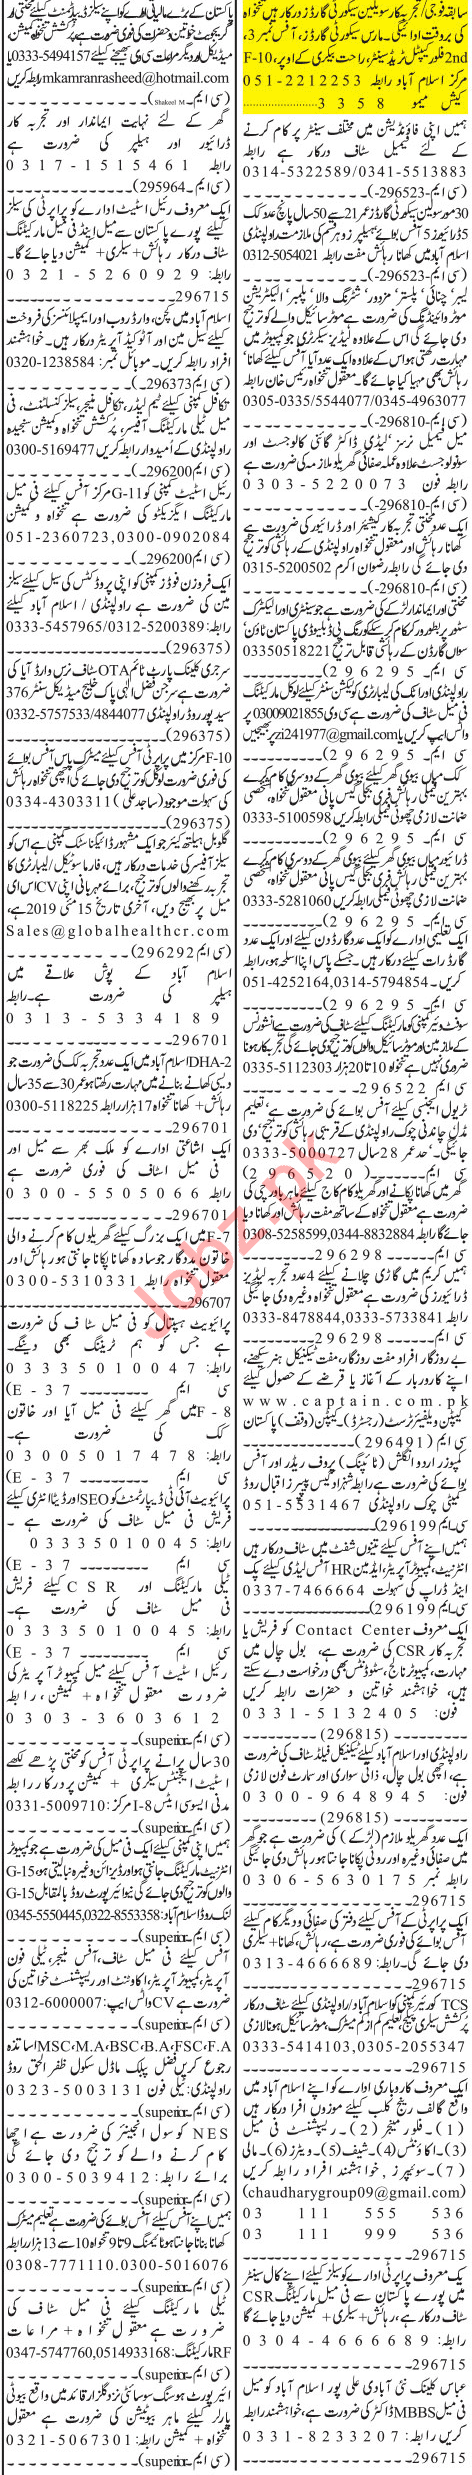 Jang Sunday Classified Ads 21st April 2019 for Miscellaneous